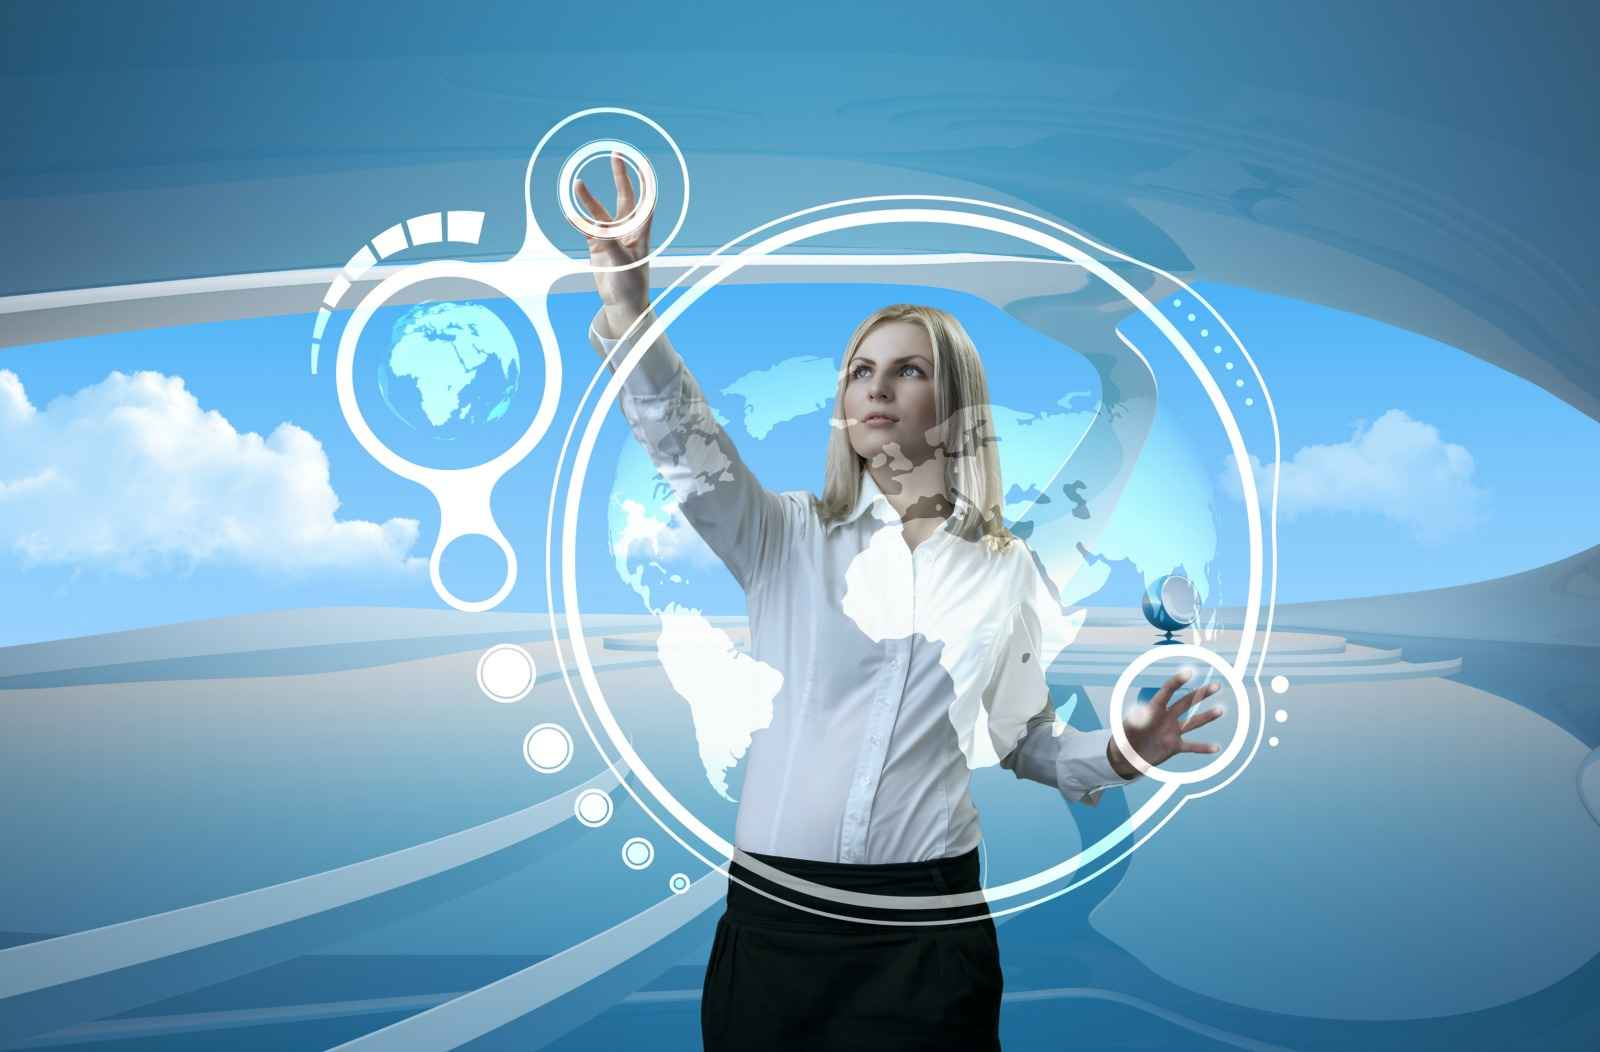 seo services for travel agencies